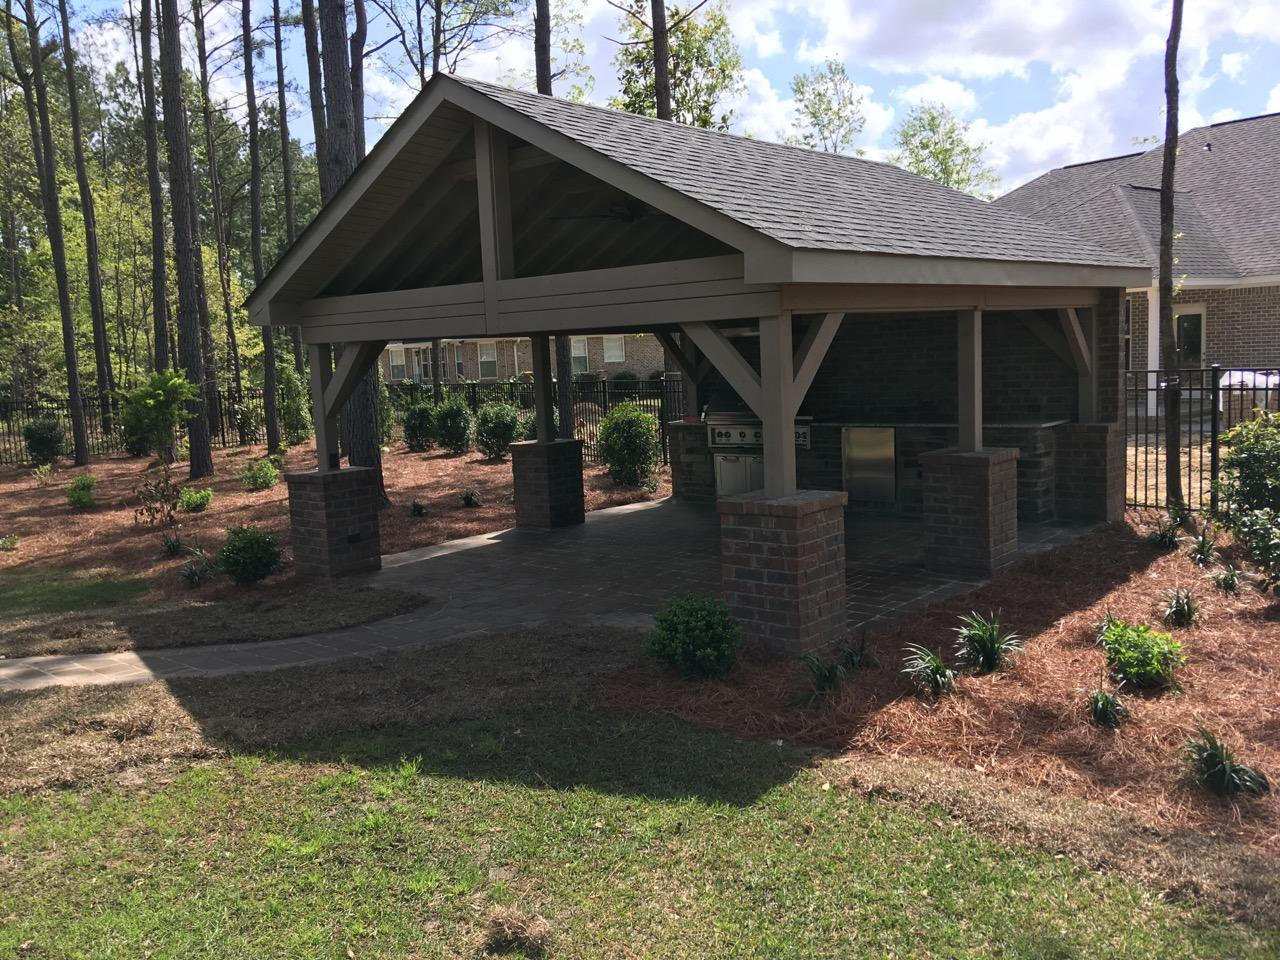 Detached-covered-porch-in-Sumter-SC-by-Archadeck-of-Central-SC